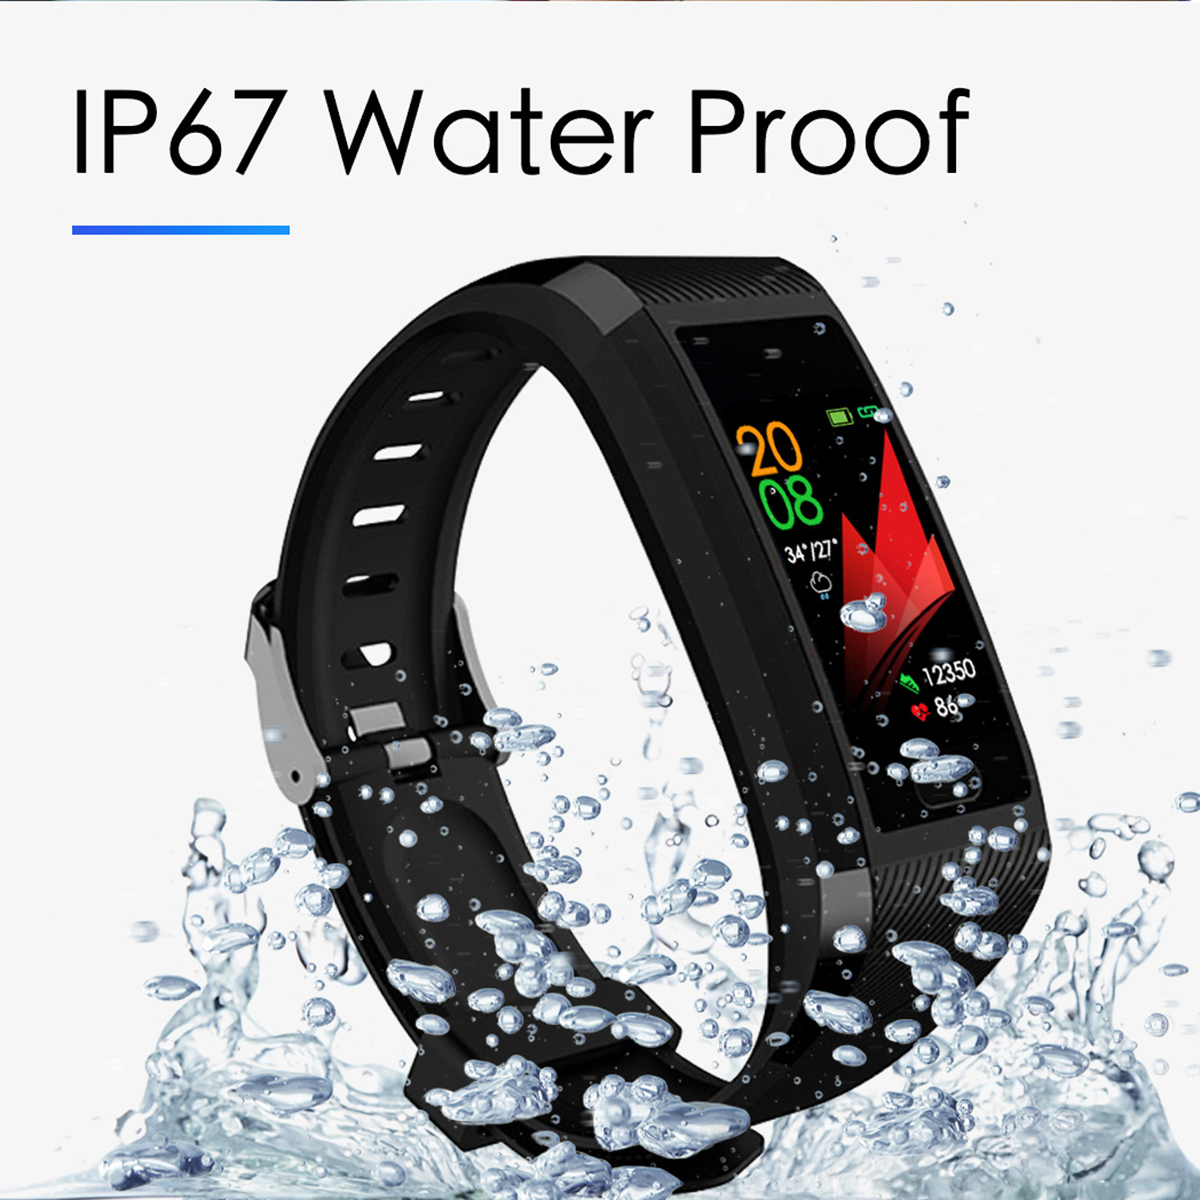 Bakeey-T12-114-Fitness-Tracker-Record-Blood-Pressure-O2-SMS-Reminder-Weather-Forecast-Smart-Watch-Ba-1566984